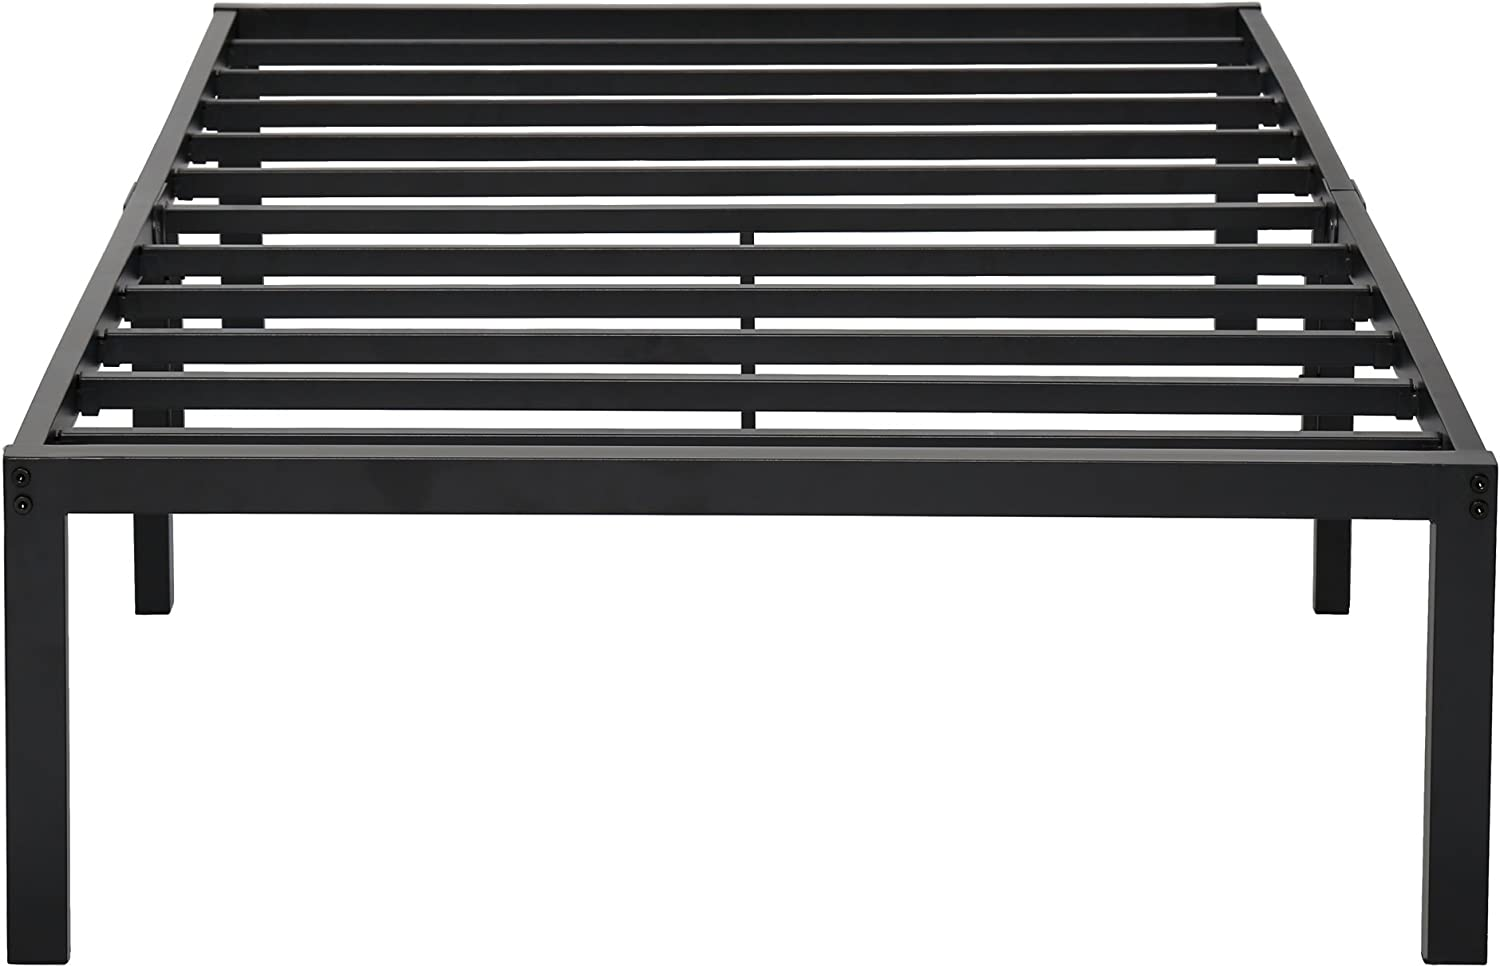 PrimaSleep 14 Inch Tall Simple Sturdy Steel Slat Metal Bed Frame Non Slip Ample Storage Space,Twin